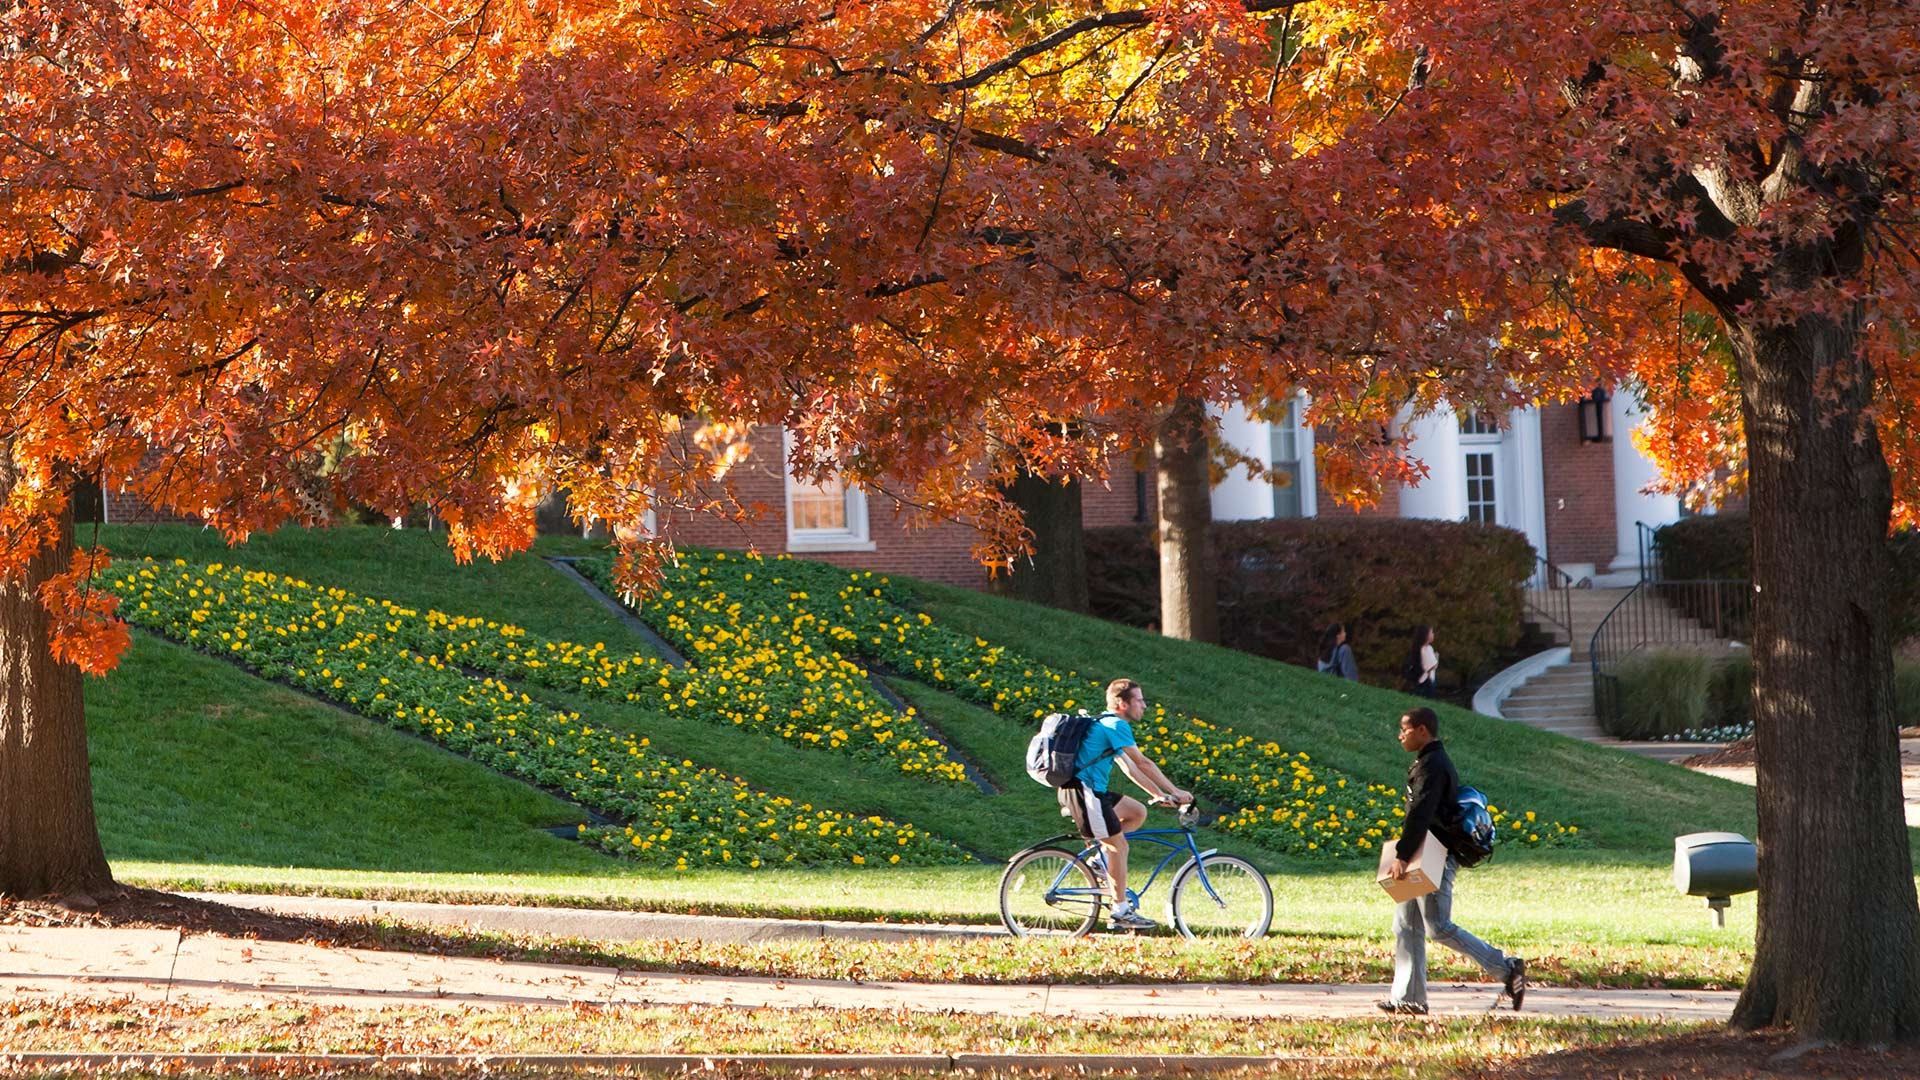 UMD Was Ranked No. 50 Among 1,250 Universities in the World